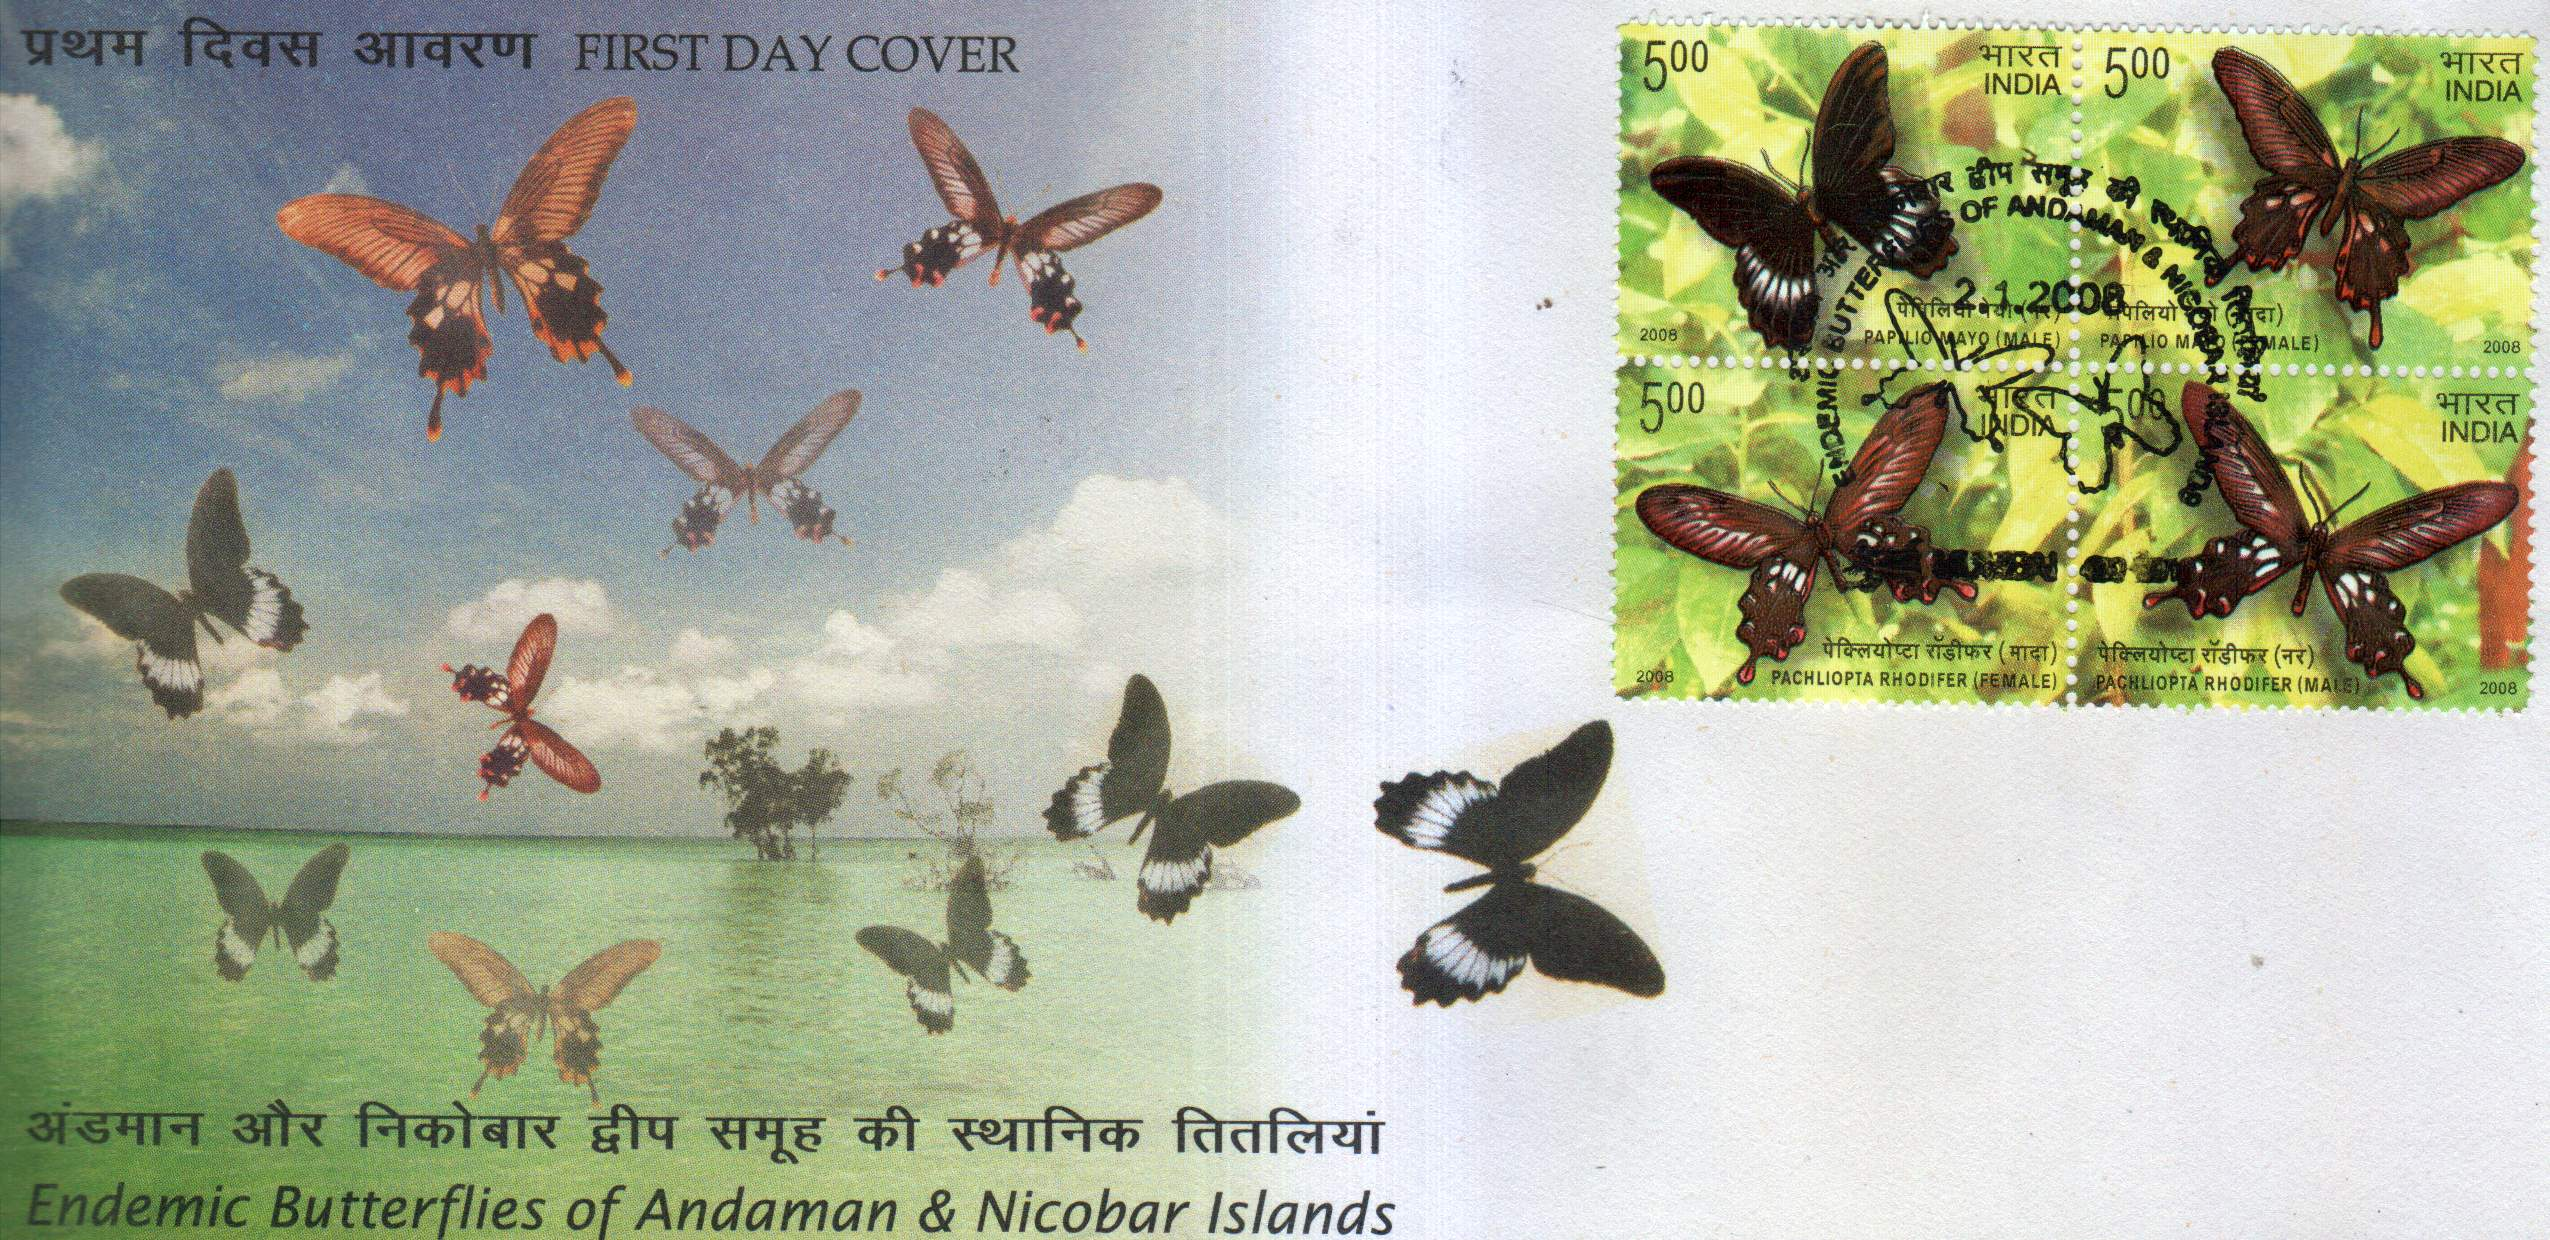 India Fdc 2008 Brochure S/Sheet Stamps Endemic Butterflies